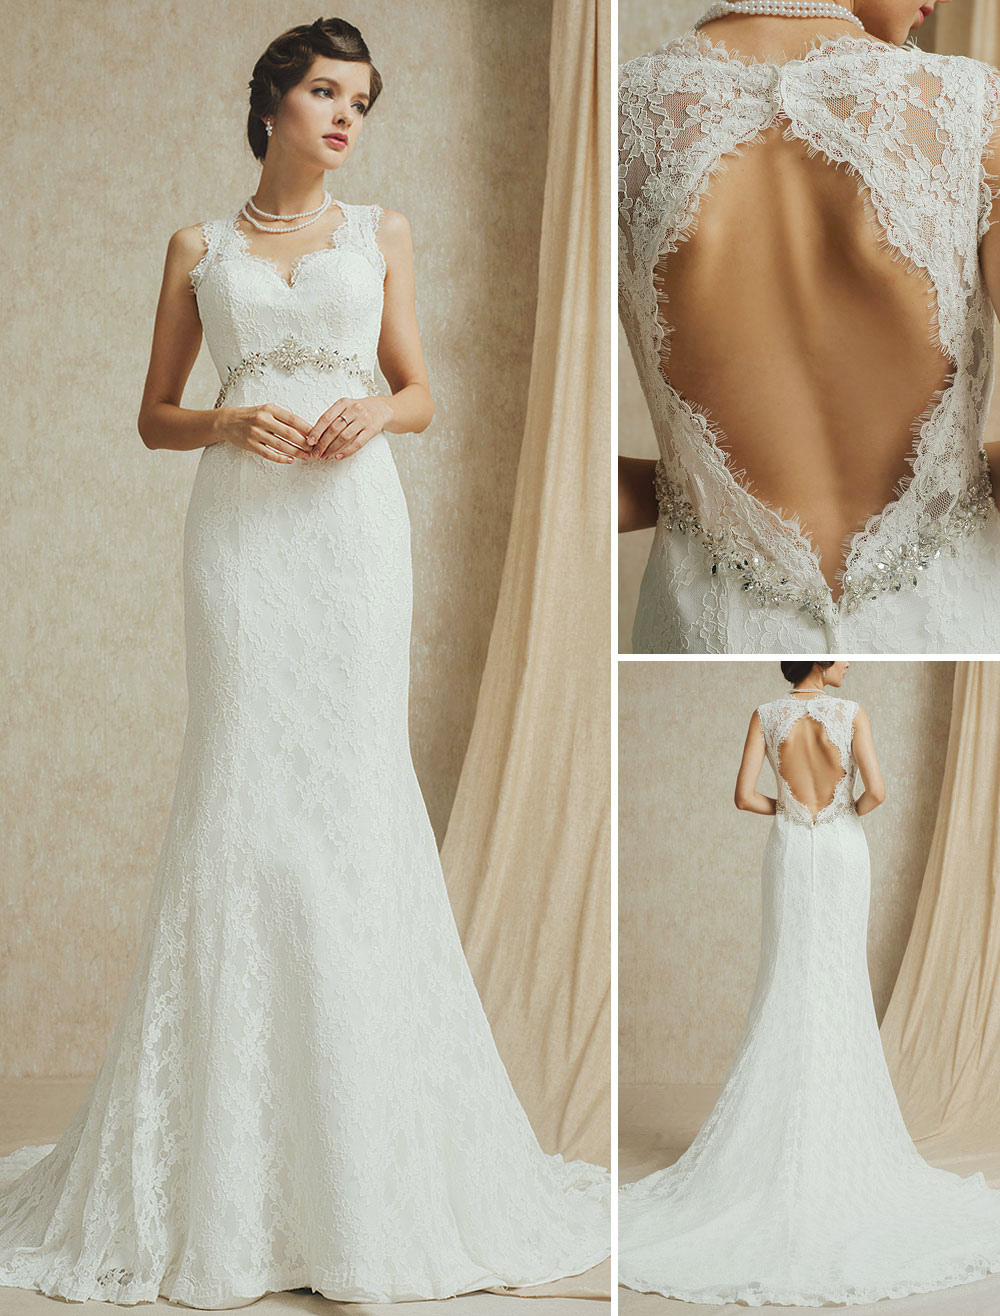 Ivory V-neck Court Train Wedding Gown with Lace ( Veil & Accessories are Excluded )